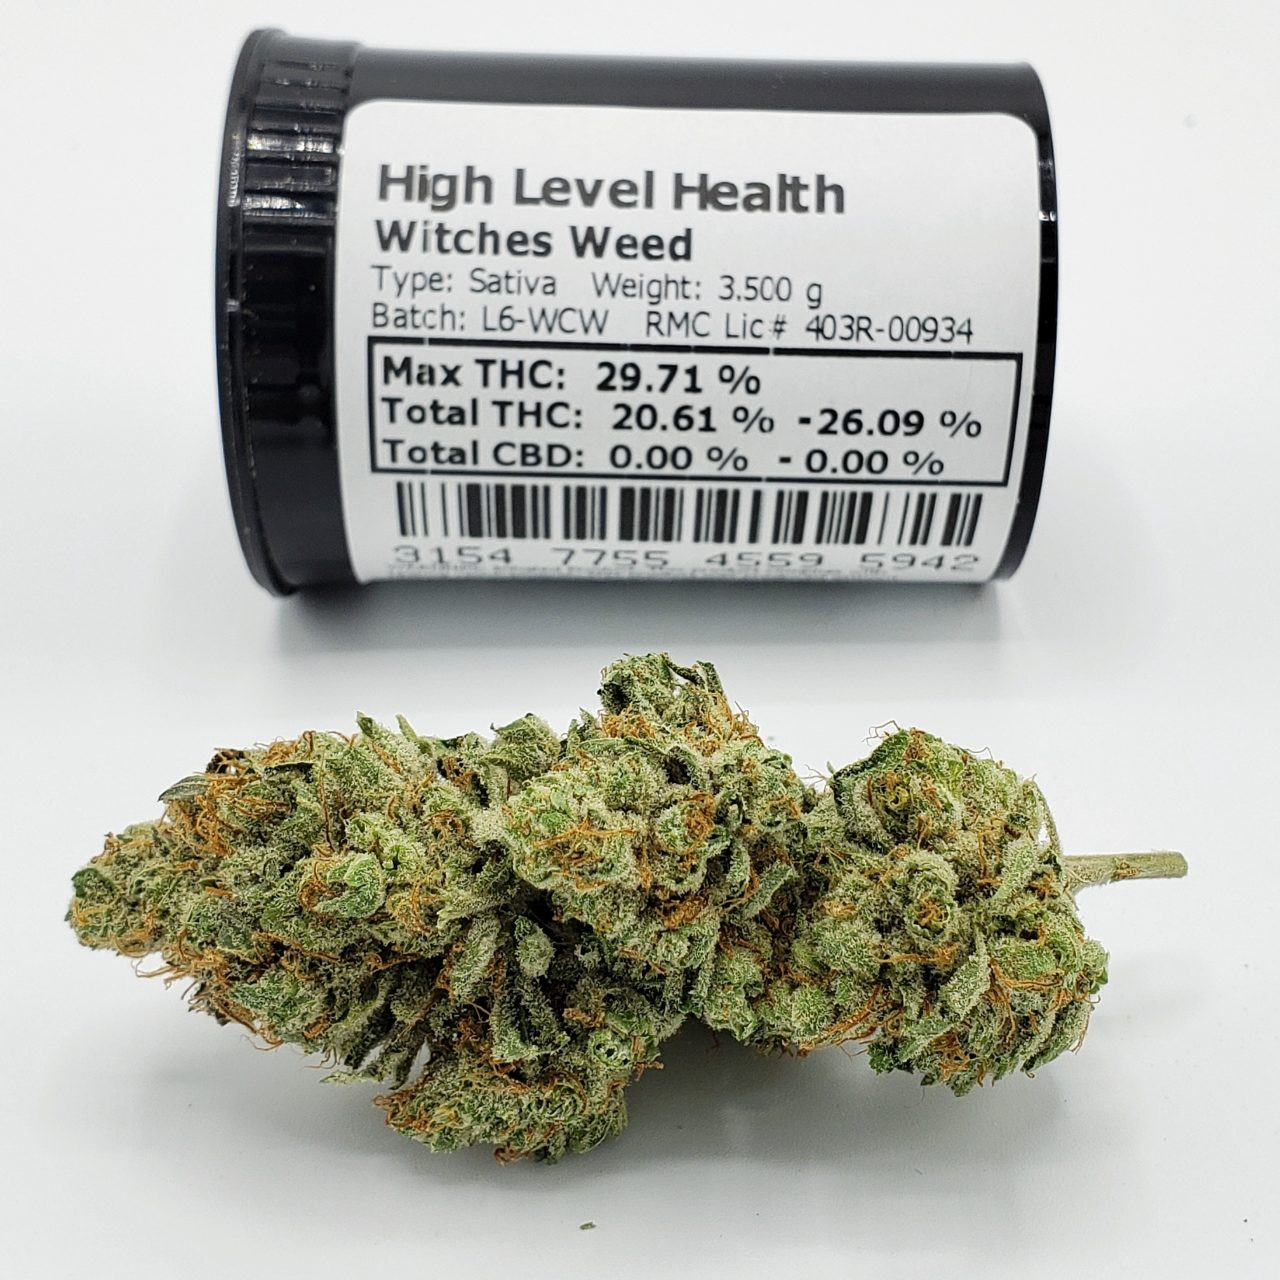 Witches Weed Sativa Cannabis Strain